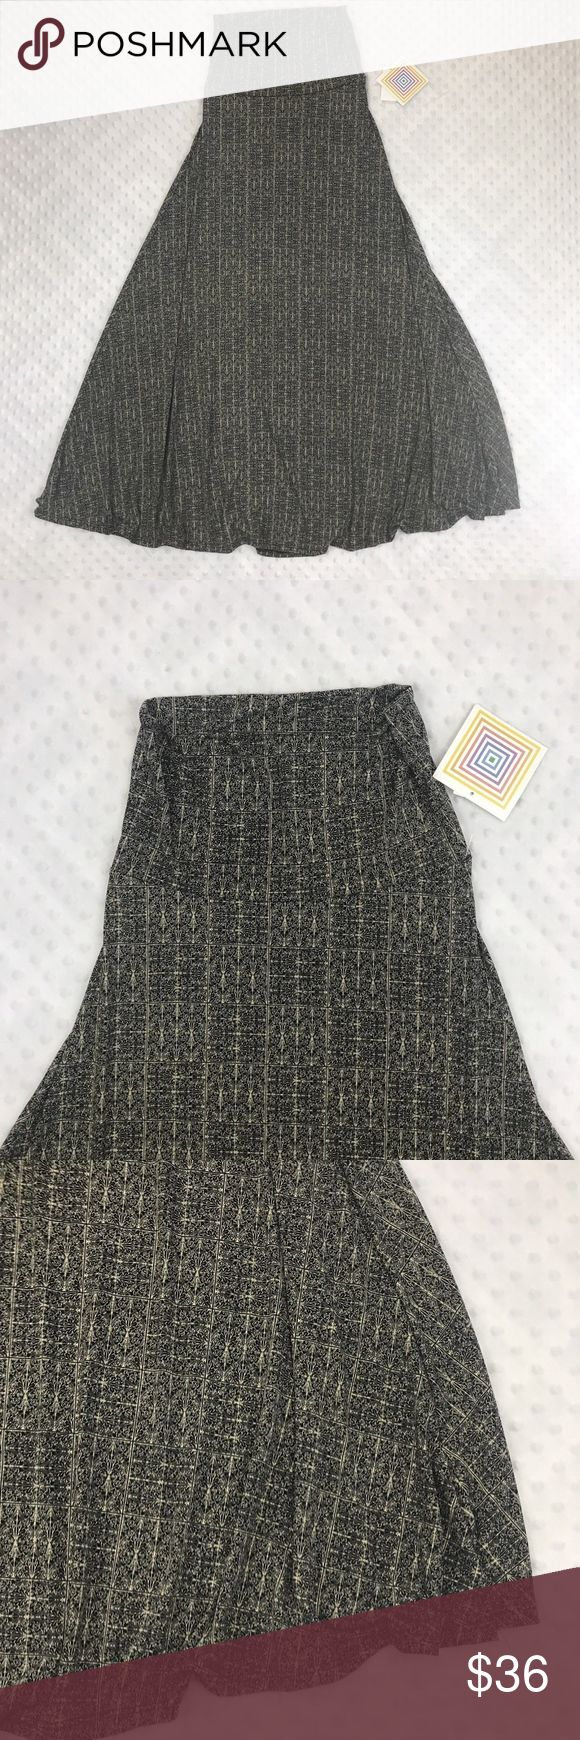 LulaRoe NWT MAXI Skirt Item: Brand New With Tags XXS MAXI Skirt  Size: XXS  Refer to measurements below for accurate fit!  Measured flat:          13-15 inches waist         42 inches length         Base Color:  Blue   Please look at photos for better description LuLaRoe Skirts Maxi